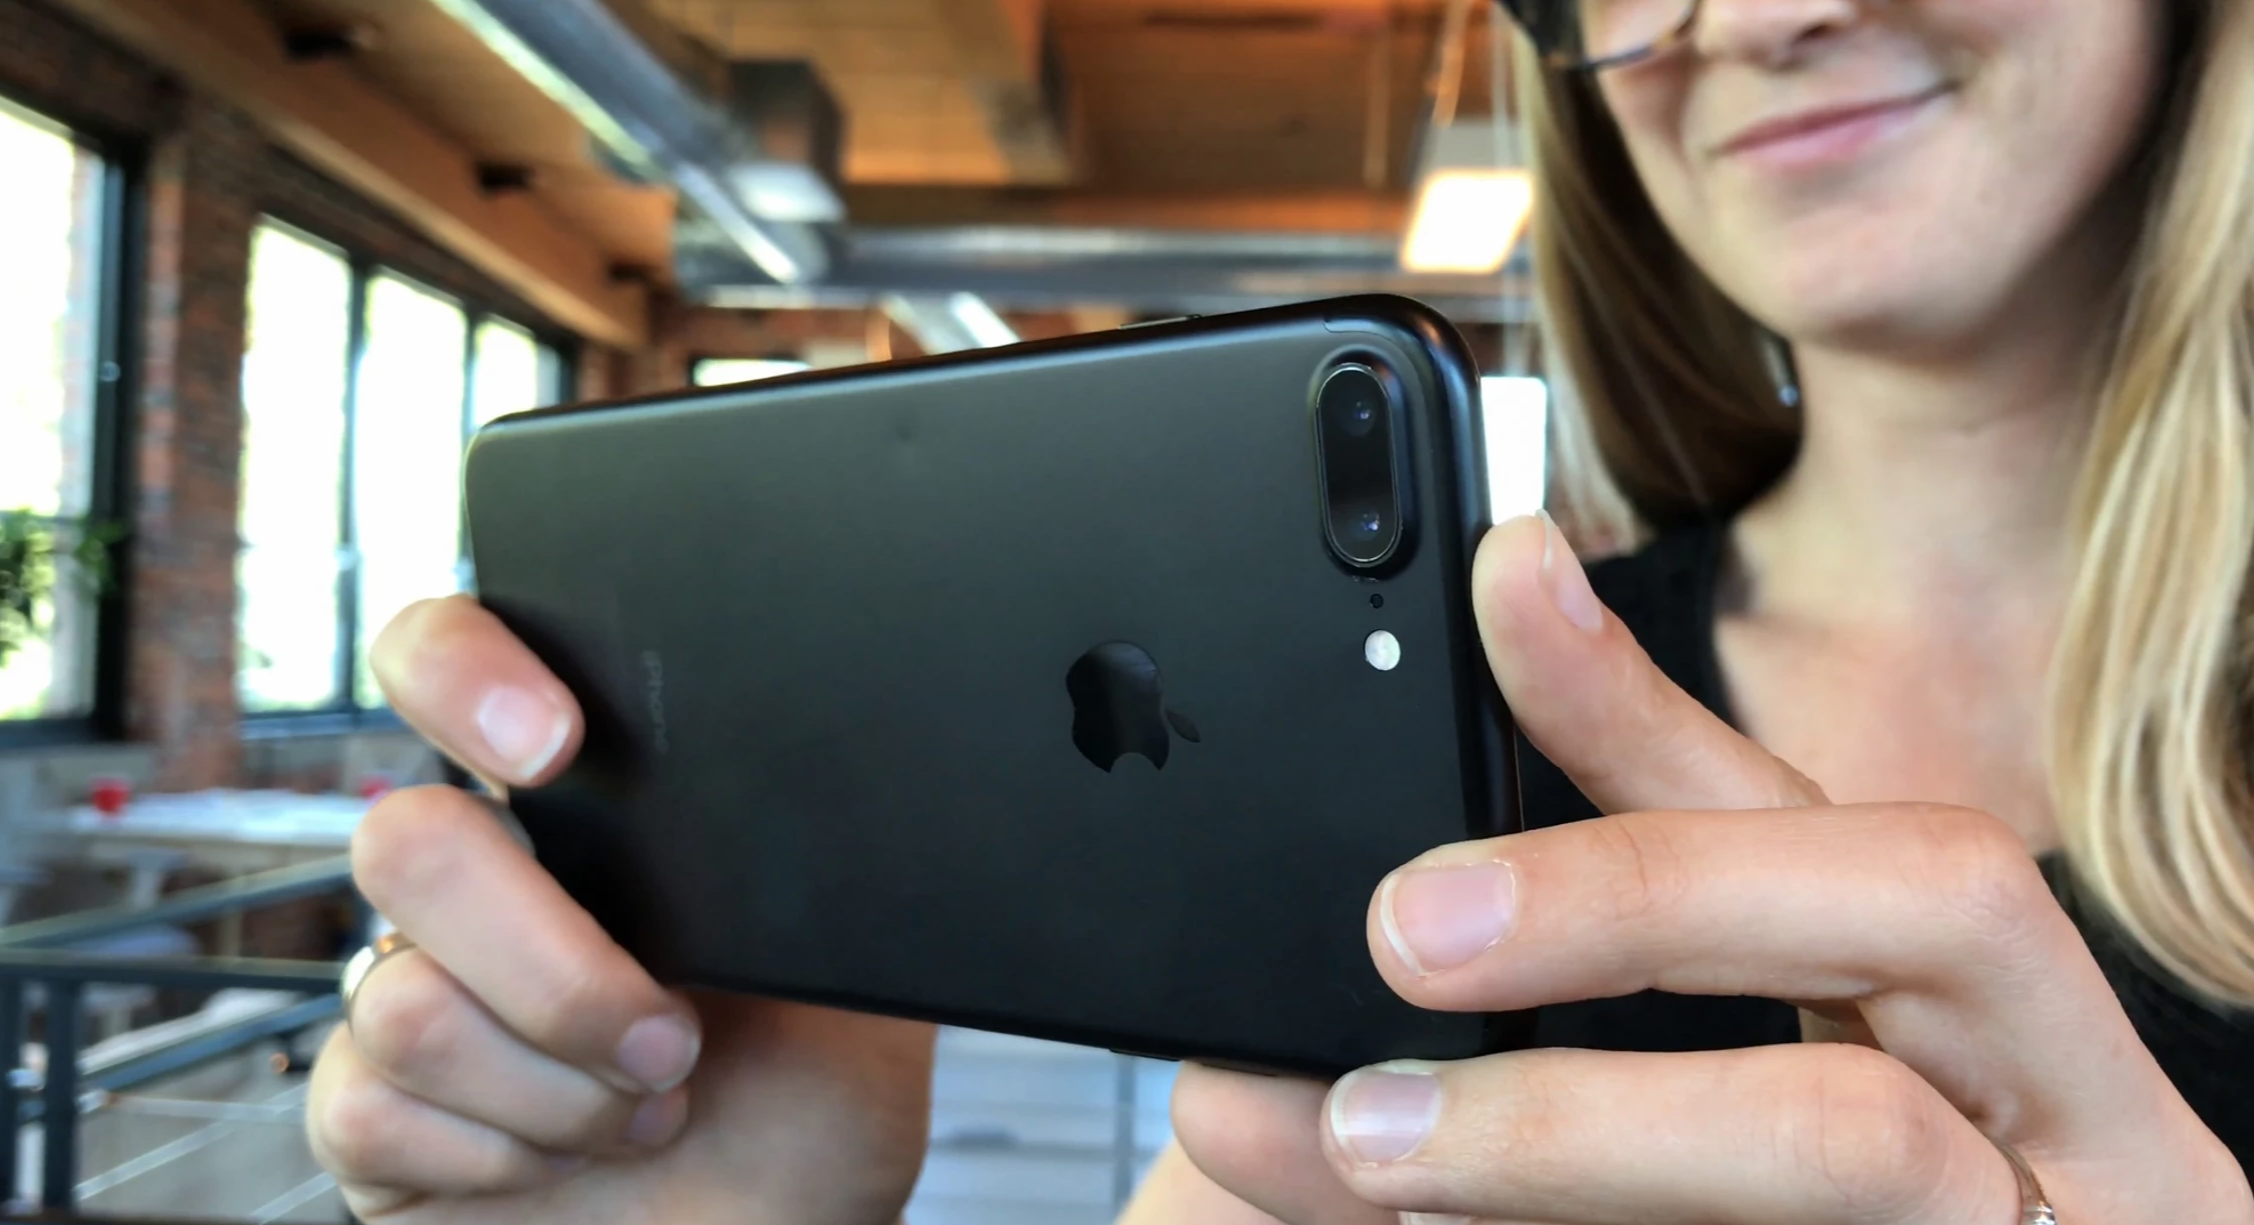 picture of black iphone being held by a woman